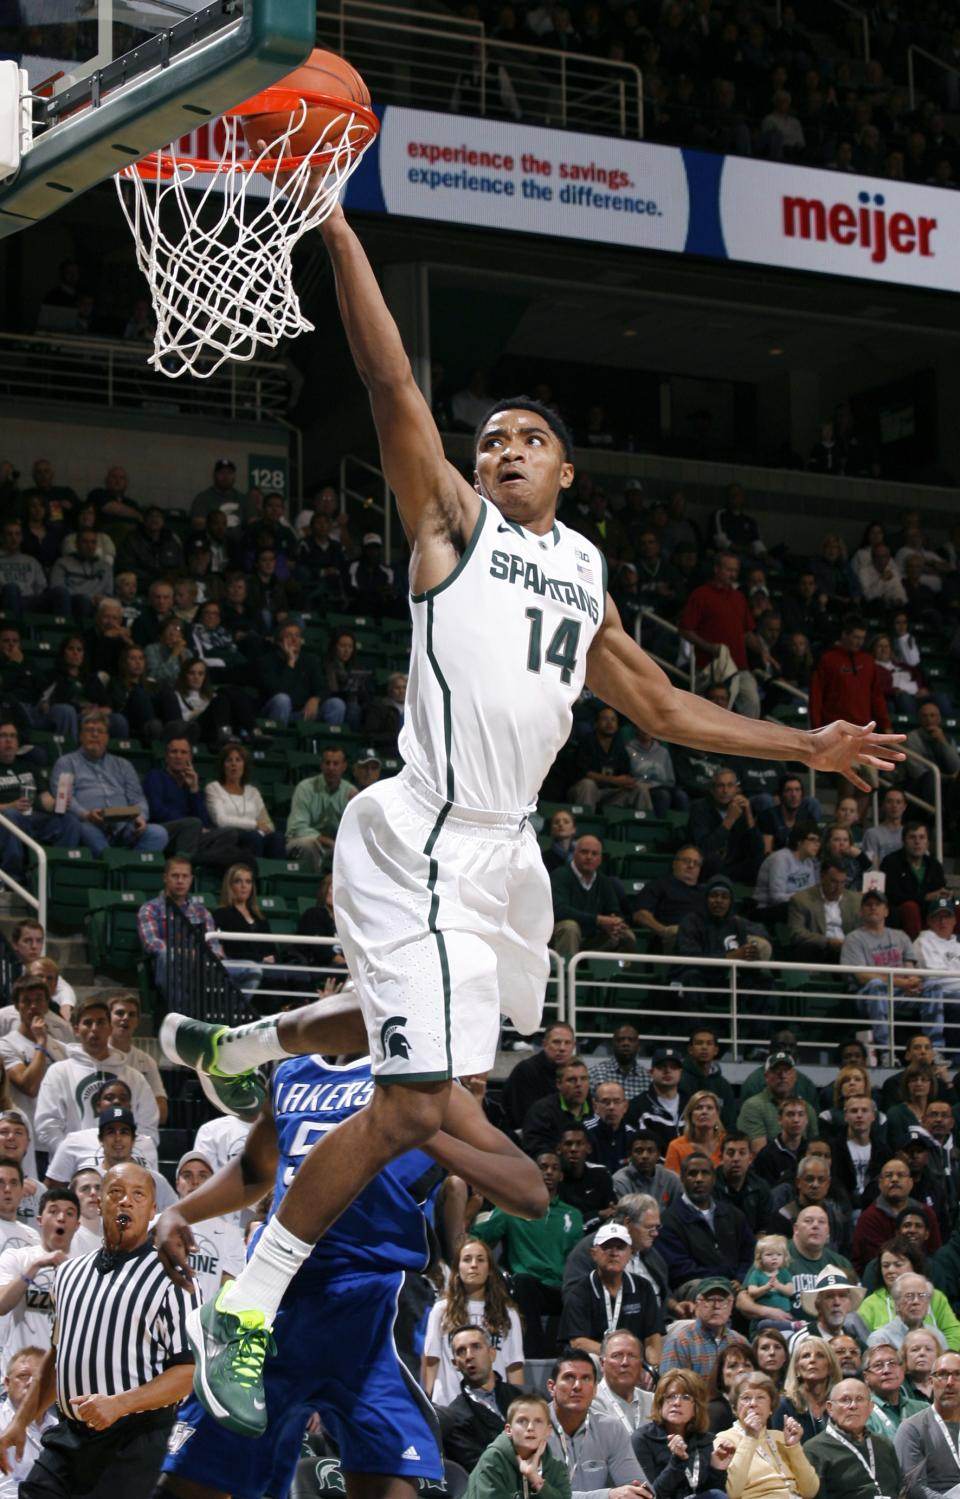 Michigan State beats Grand Valley in exhibition